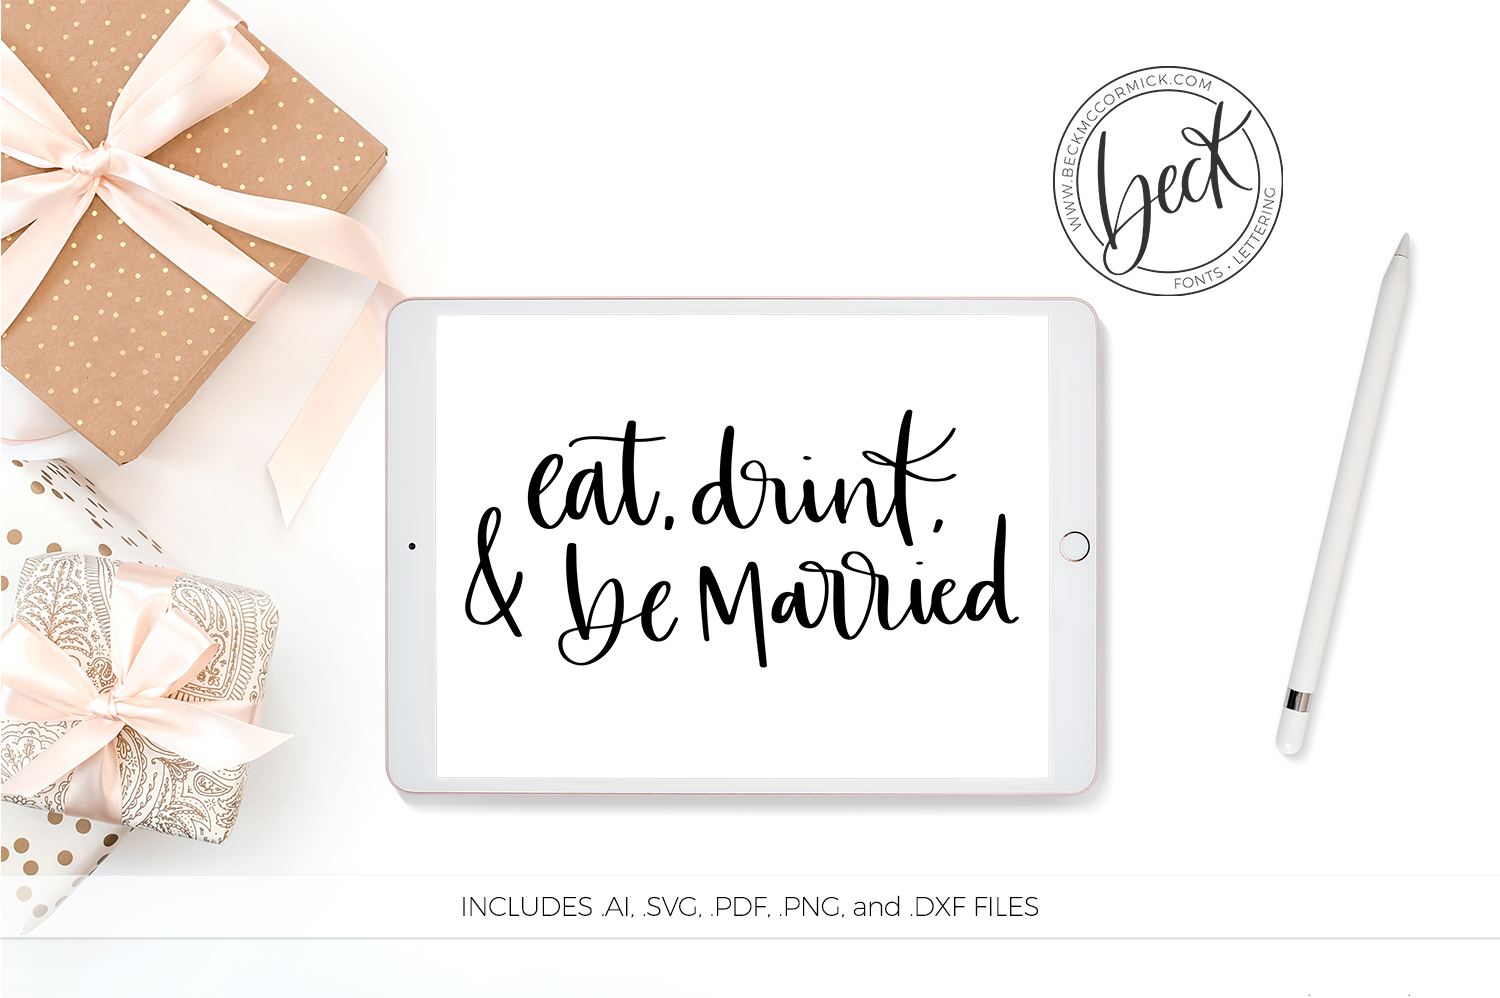 Download Free Eat Drink Be Married Graphic By Beckmccormick Creative Fabrica for Cricut Explore, Silhouette and other cutting machines.